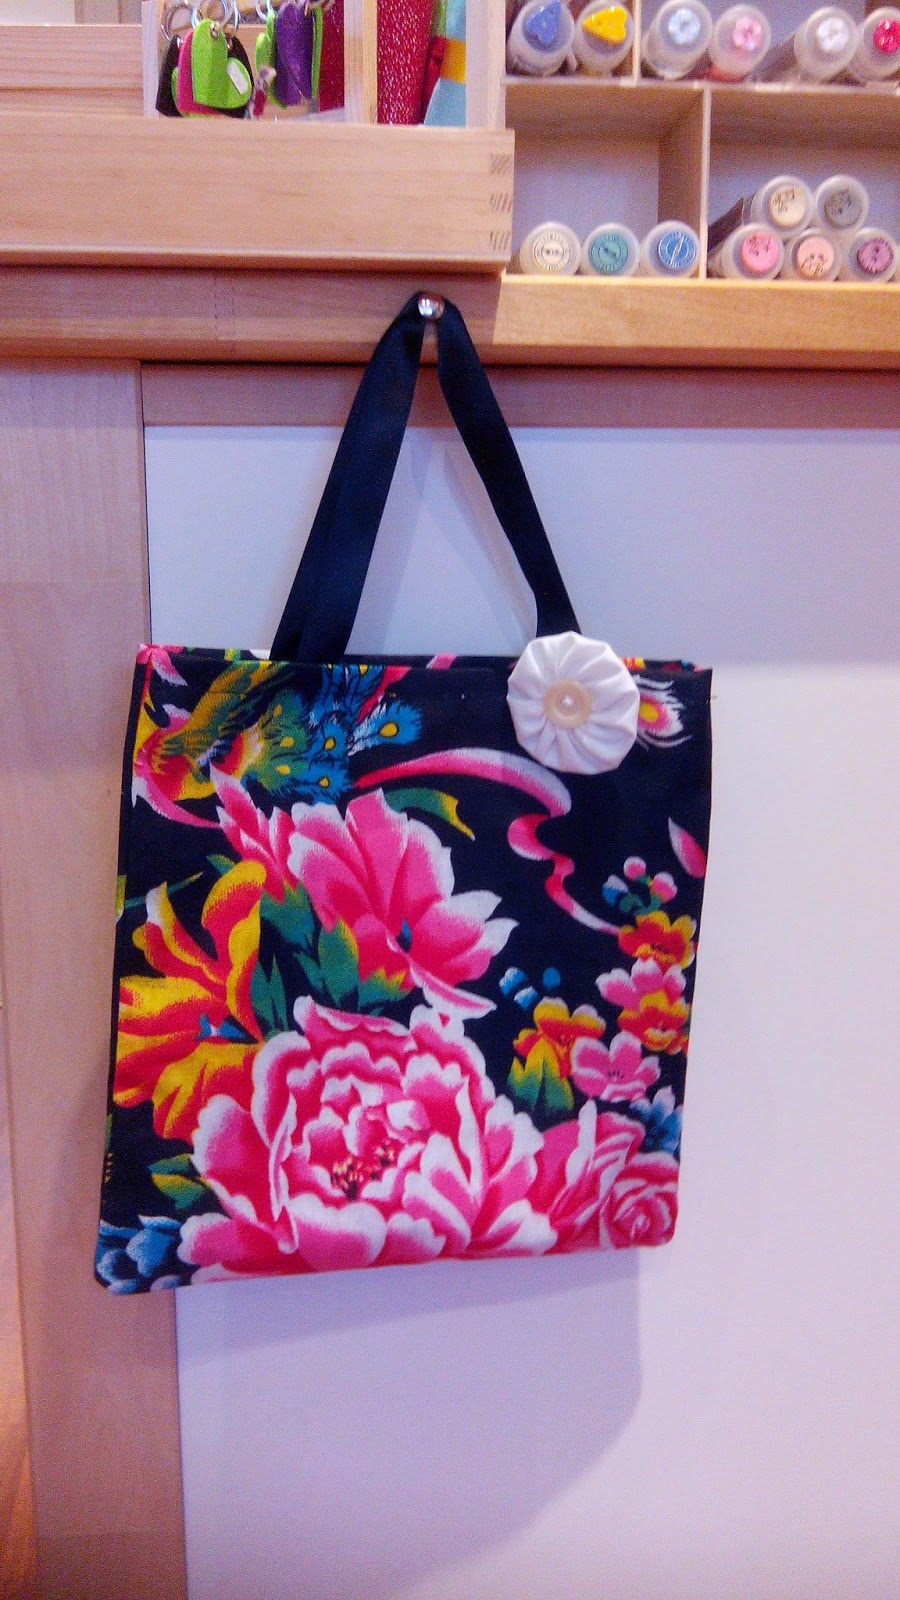 Couture atelier sac tote bag chinois